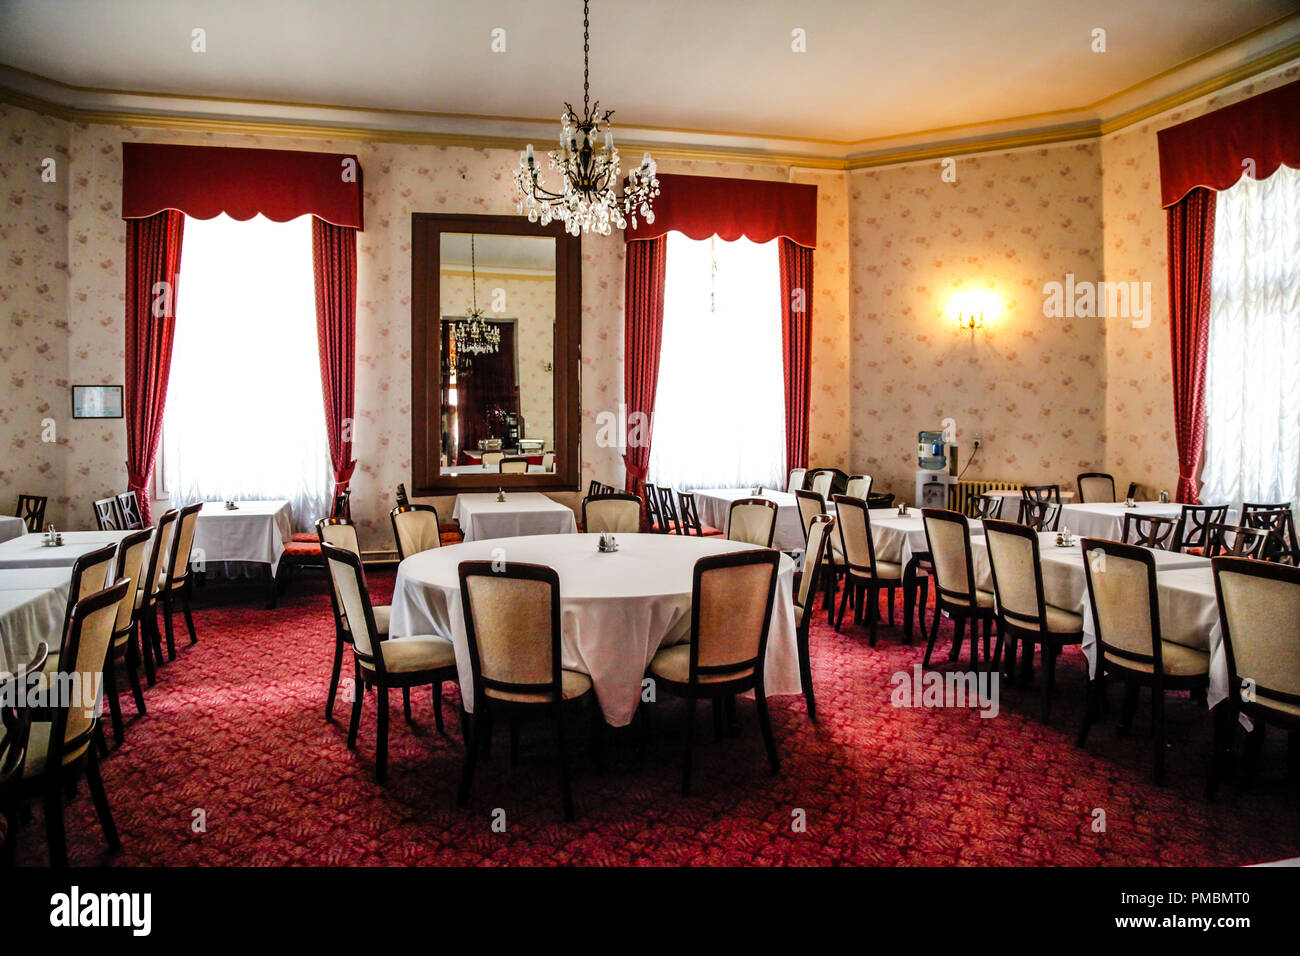 The Dining Room With Red Carpet At The Hotel Imperial In Opatija